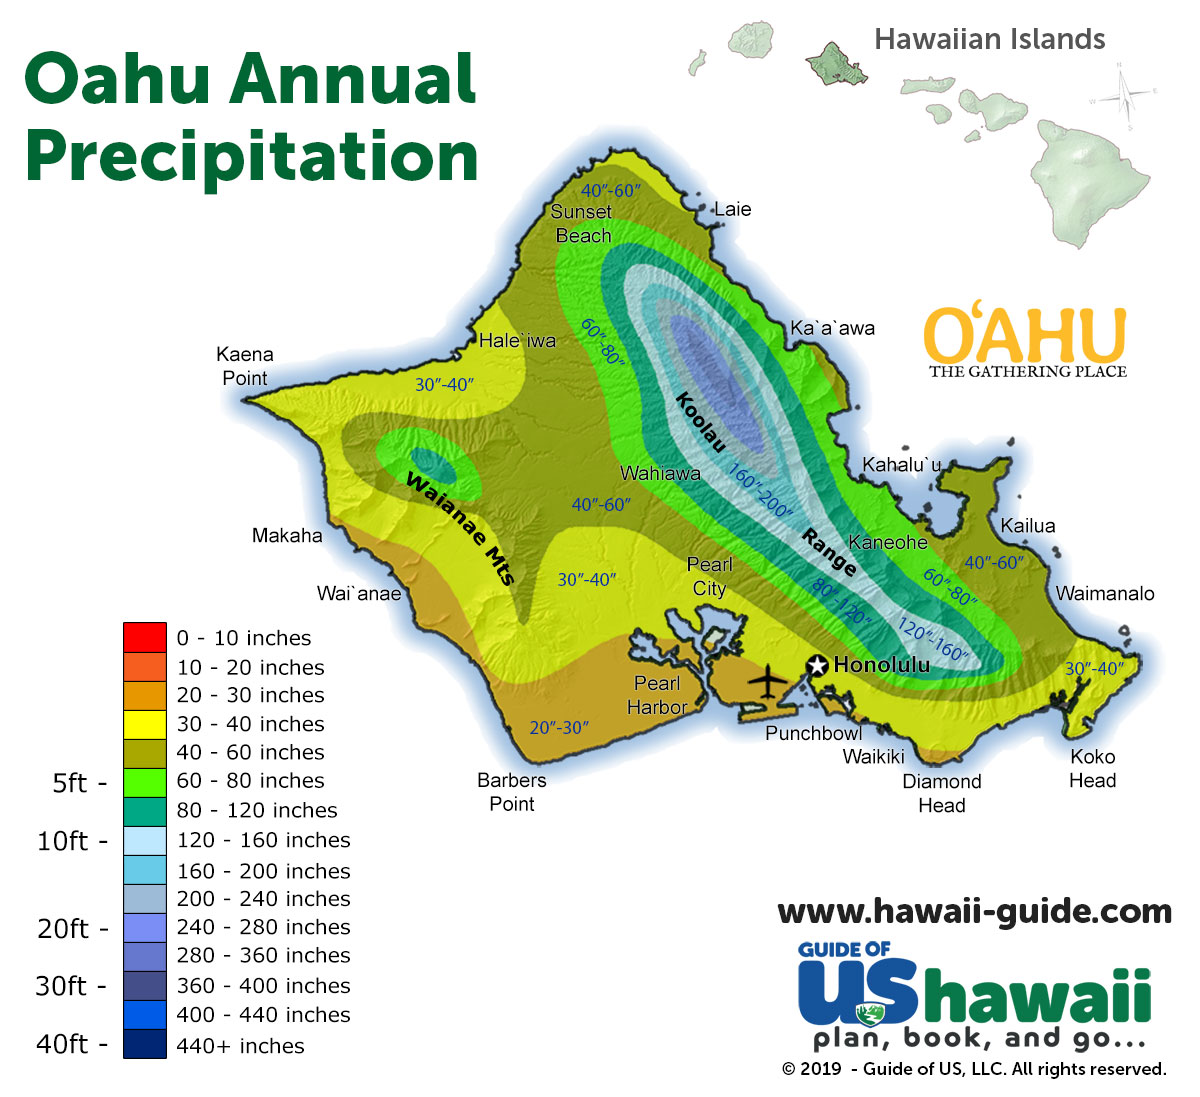 photograph regarding Oahu Map Printable identify Oahu Maps